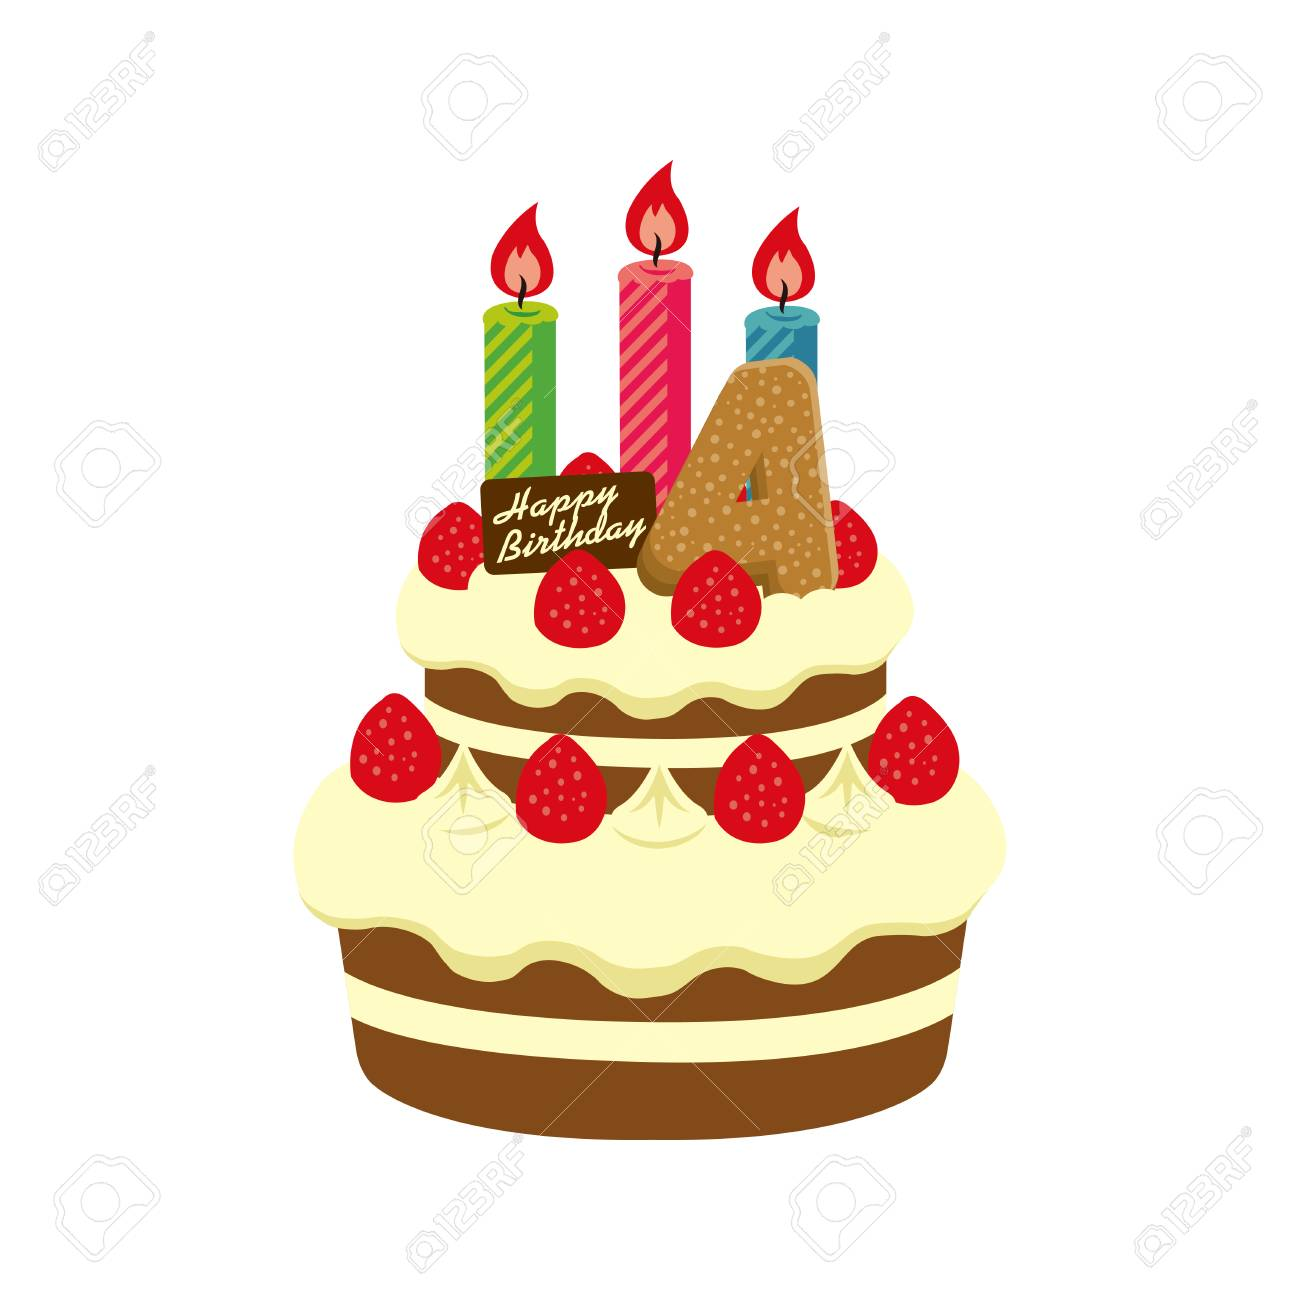 Tremendous Birthday Cake Illustration For 4 Years Old Royalty Free Cliparts Personalised Birthday Cards Veneteletsinfo